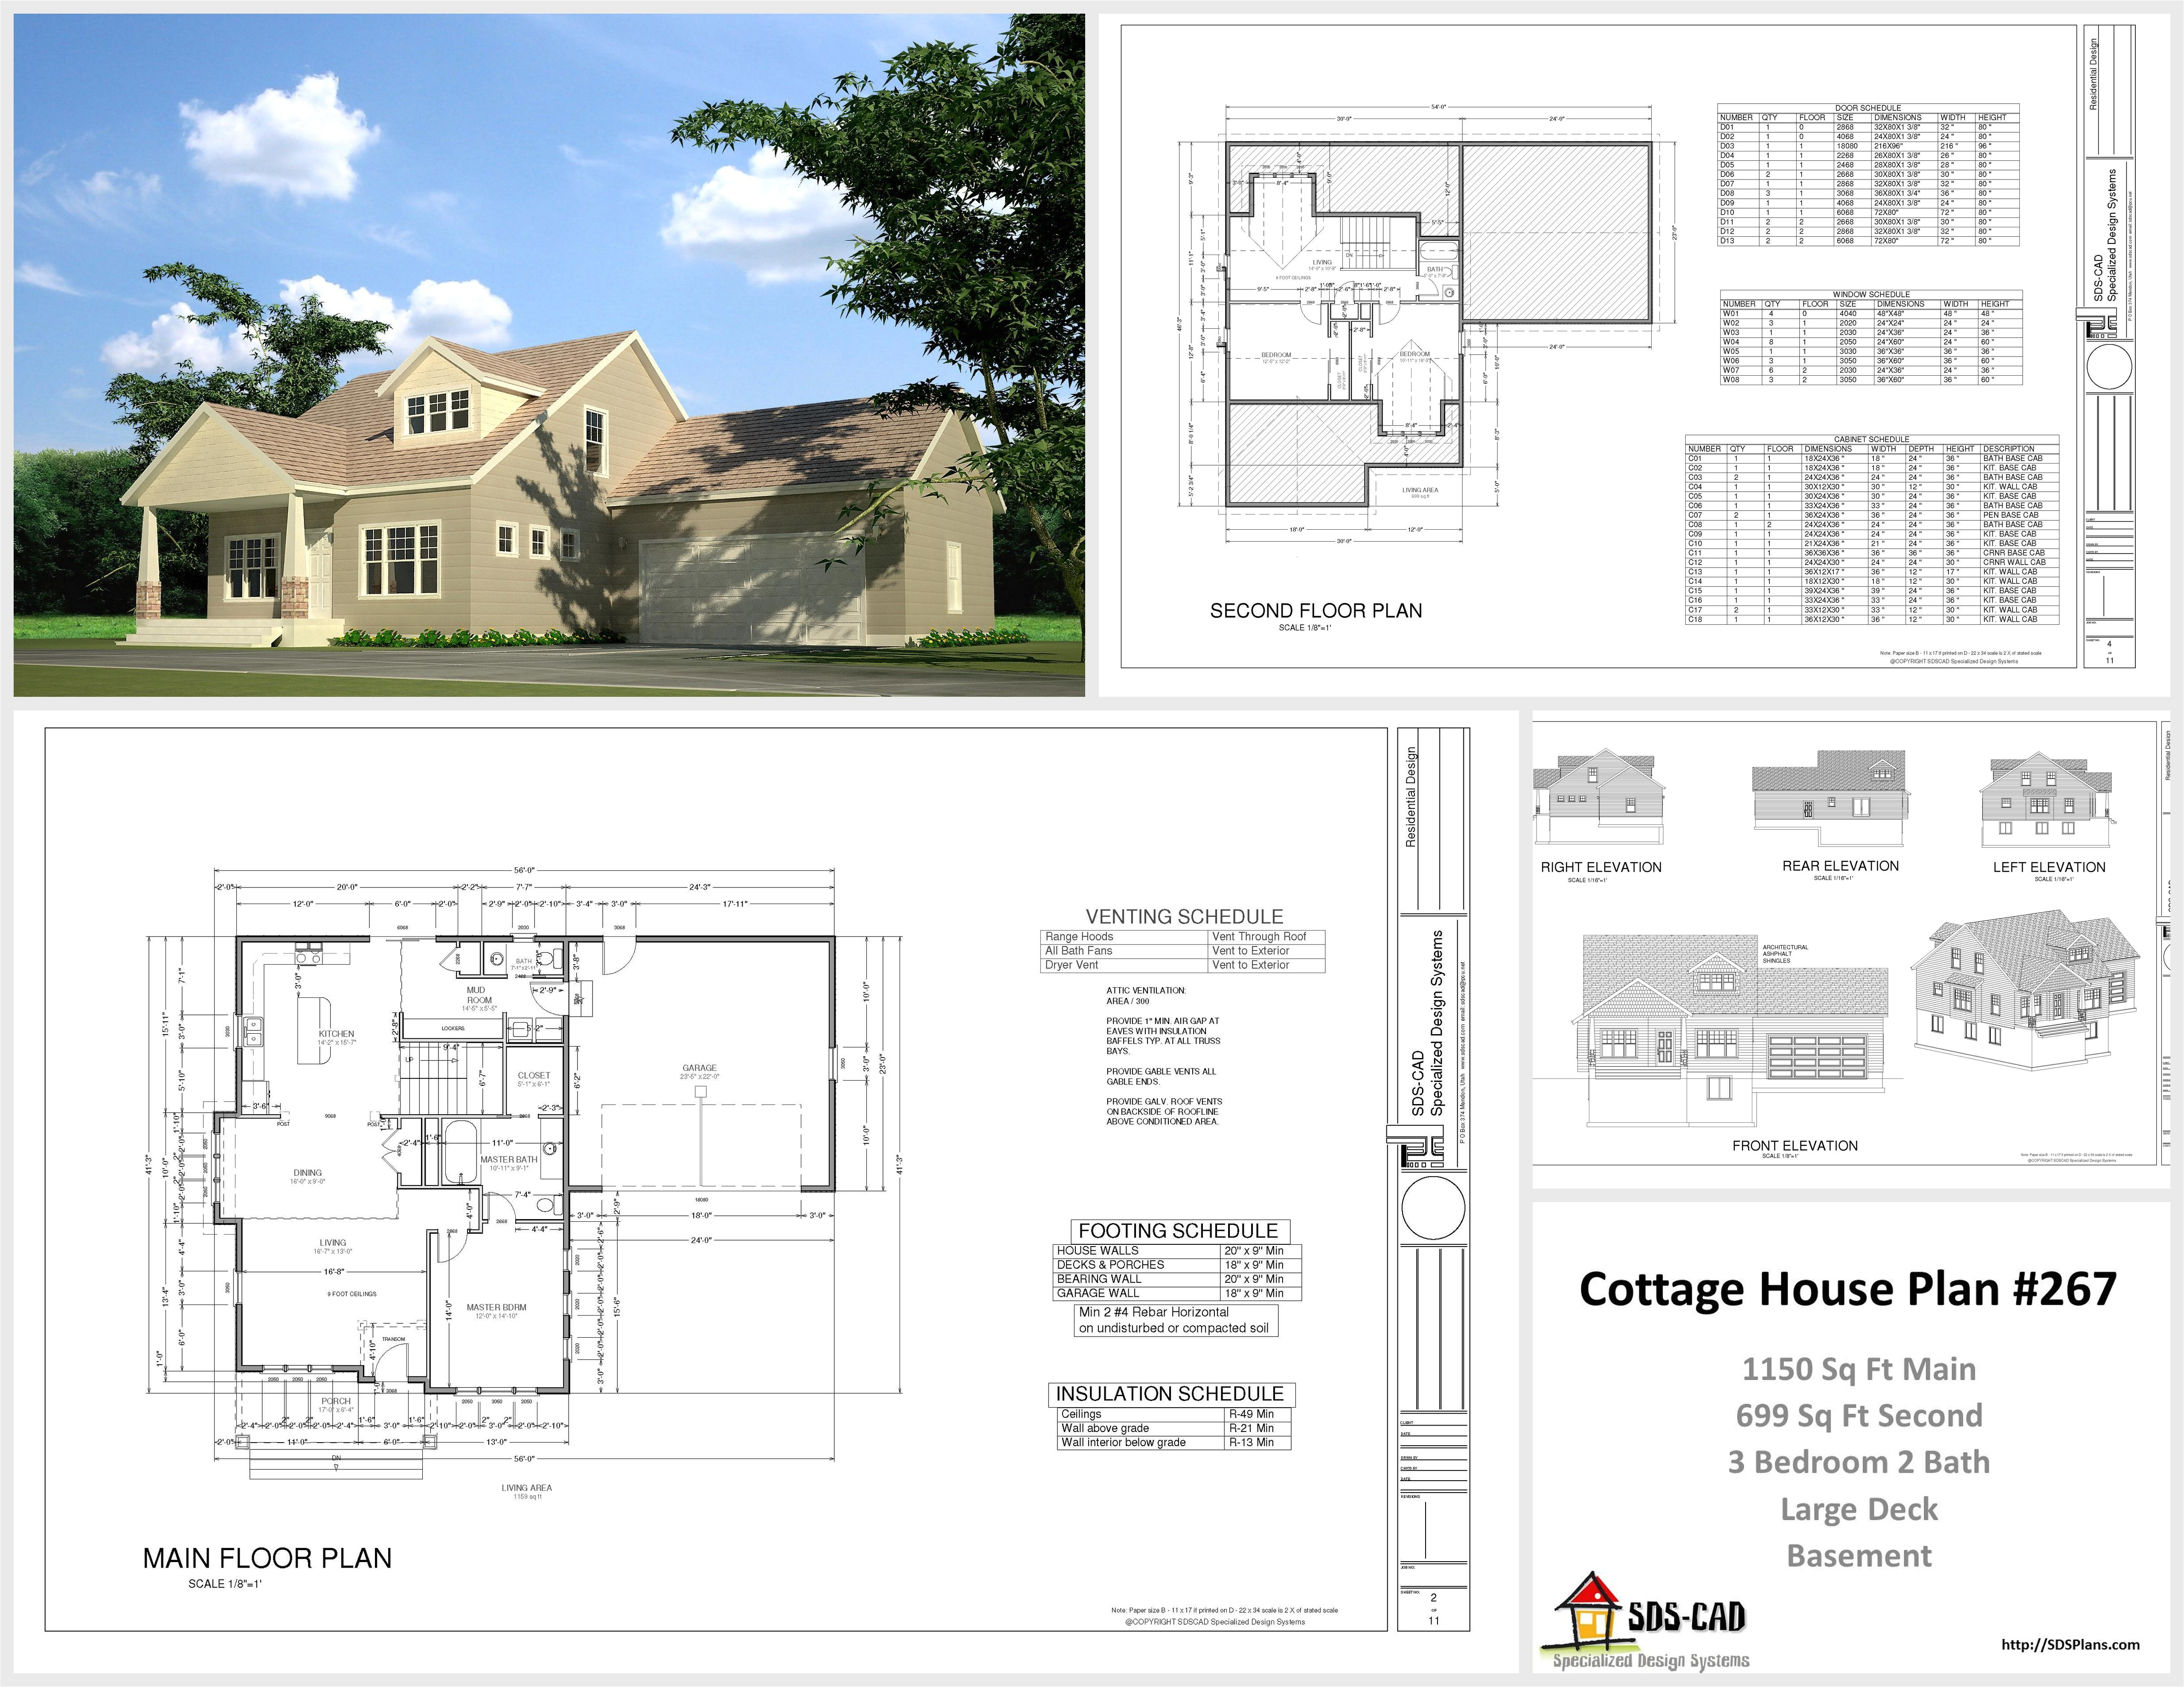 h267 cottage house plans in autocad dwg and pdf